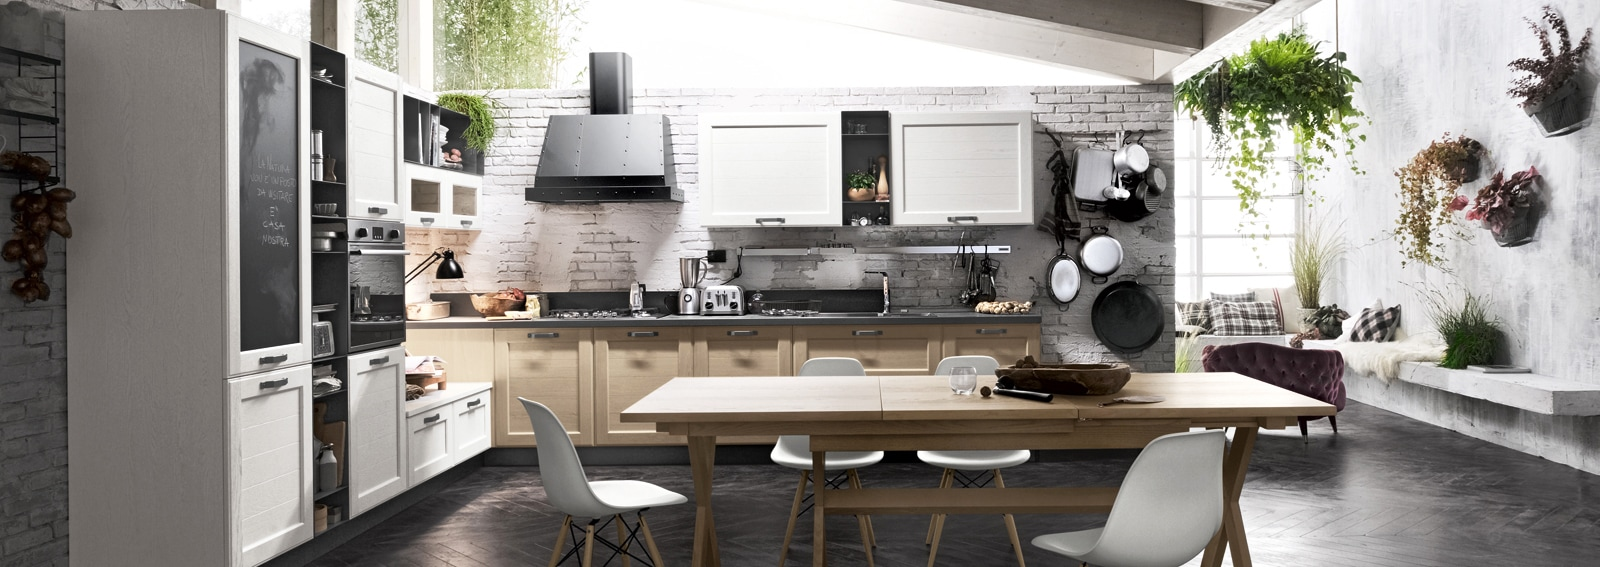 https://www.grazia.it/content/uploads/2016/04/cover-cucine-piu-belle-2016-desktop.jpg